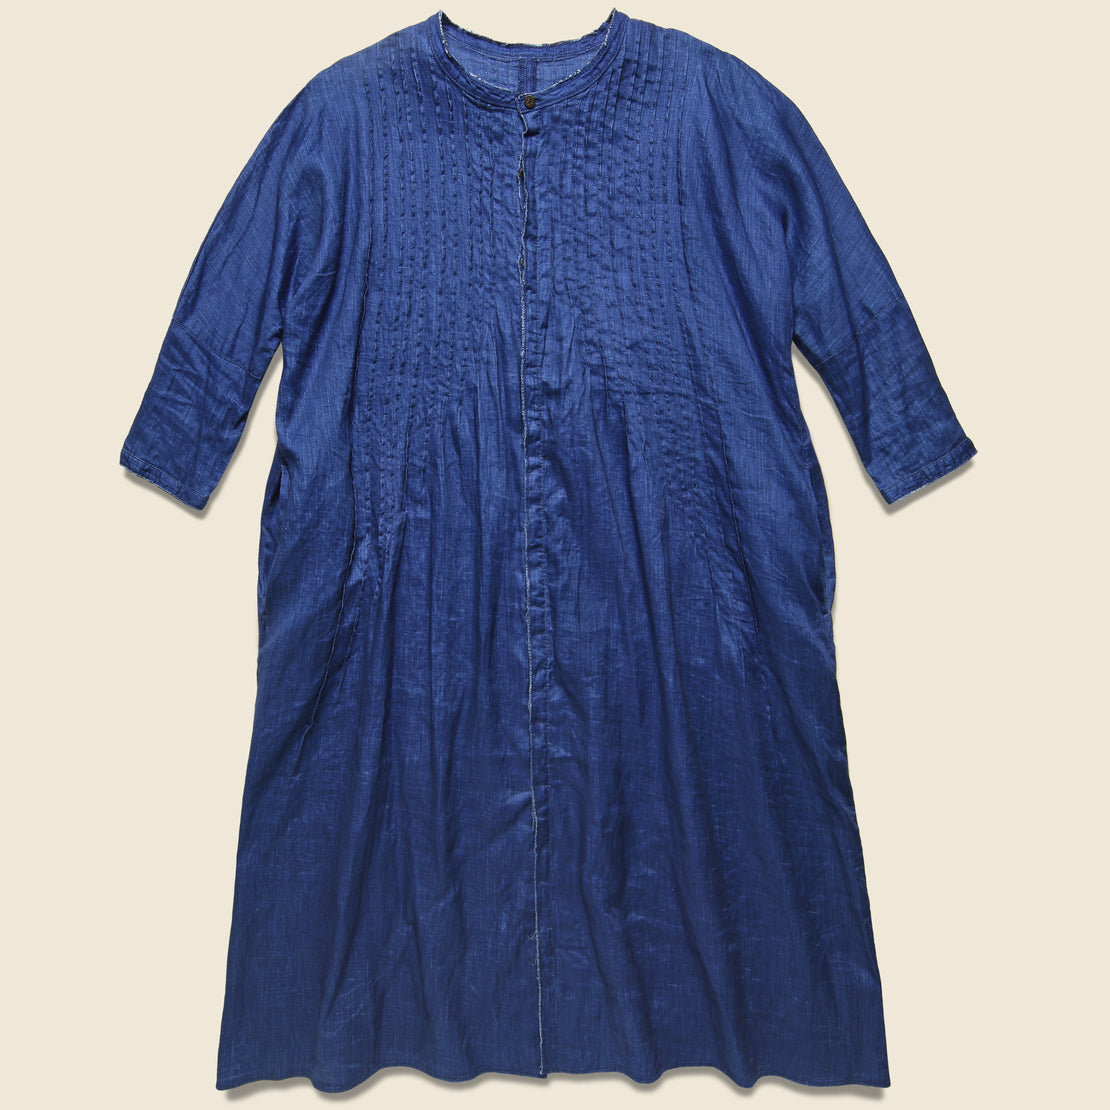 Kapital French Cloth Linen Pintuck O'Keefe Dress - Indigo